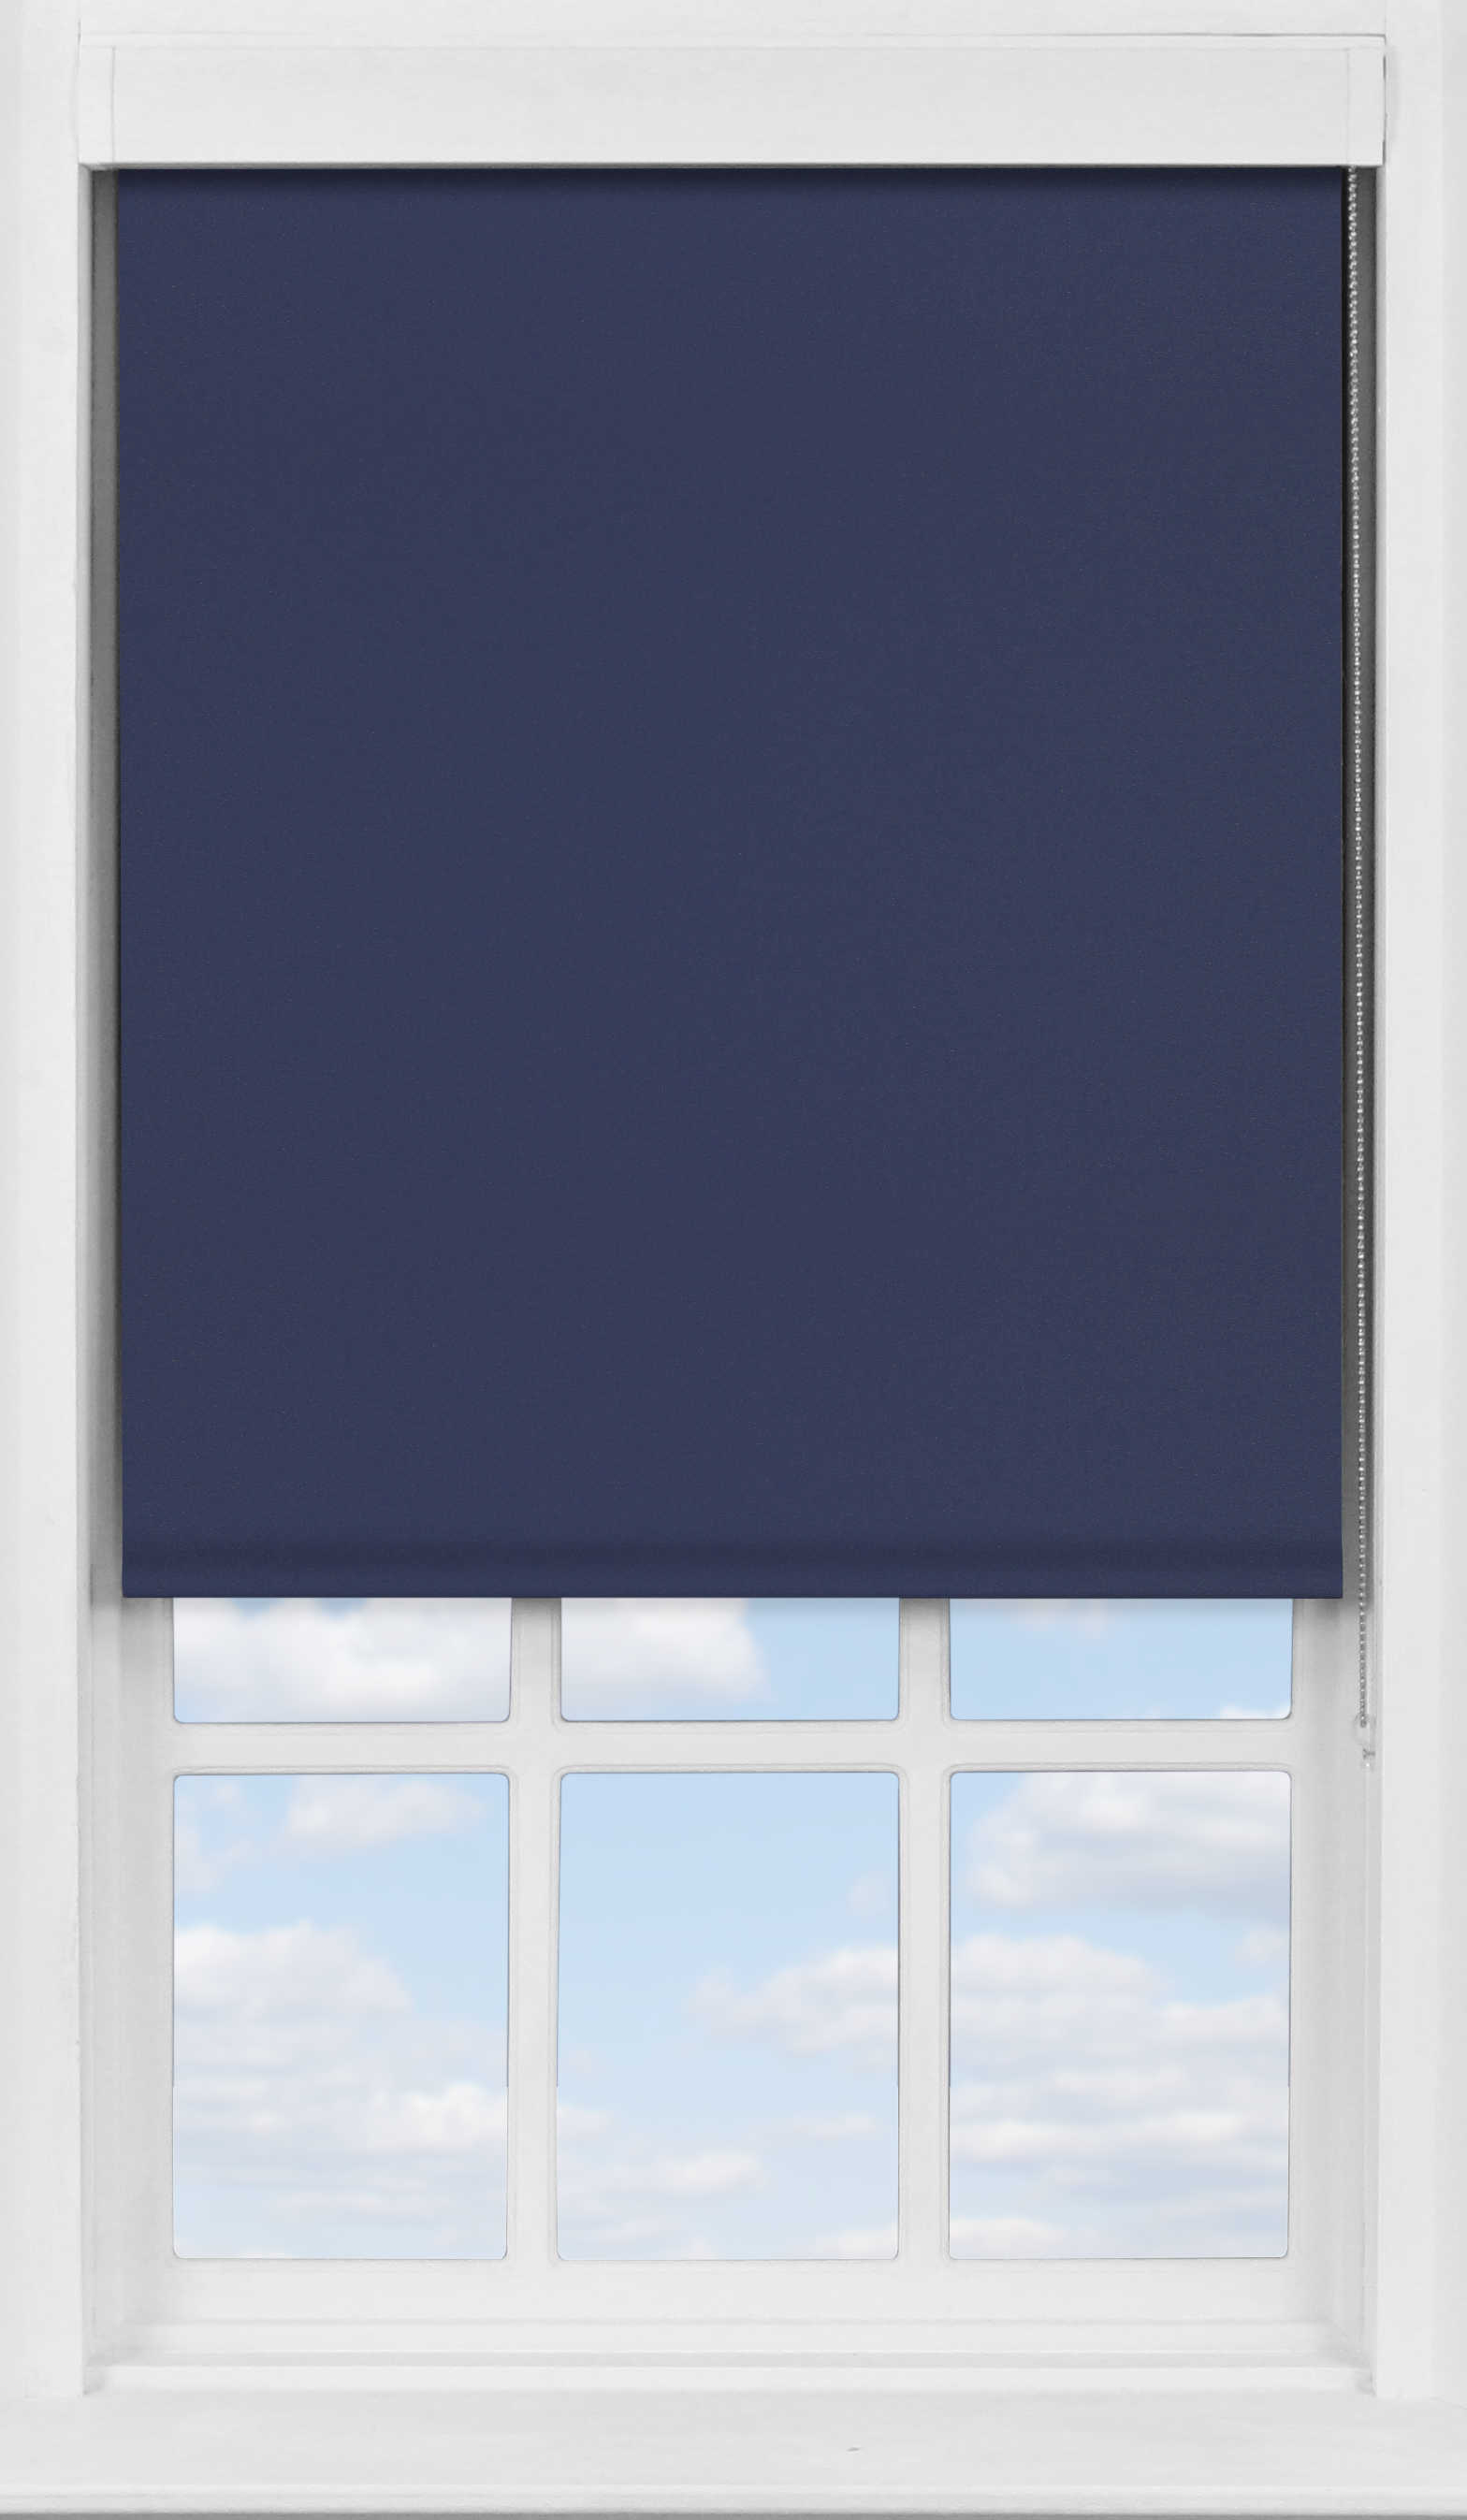 Premium Roller Blind in Midnight Blue Translucent